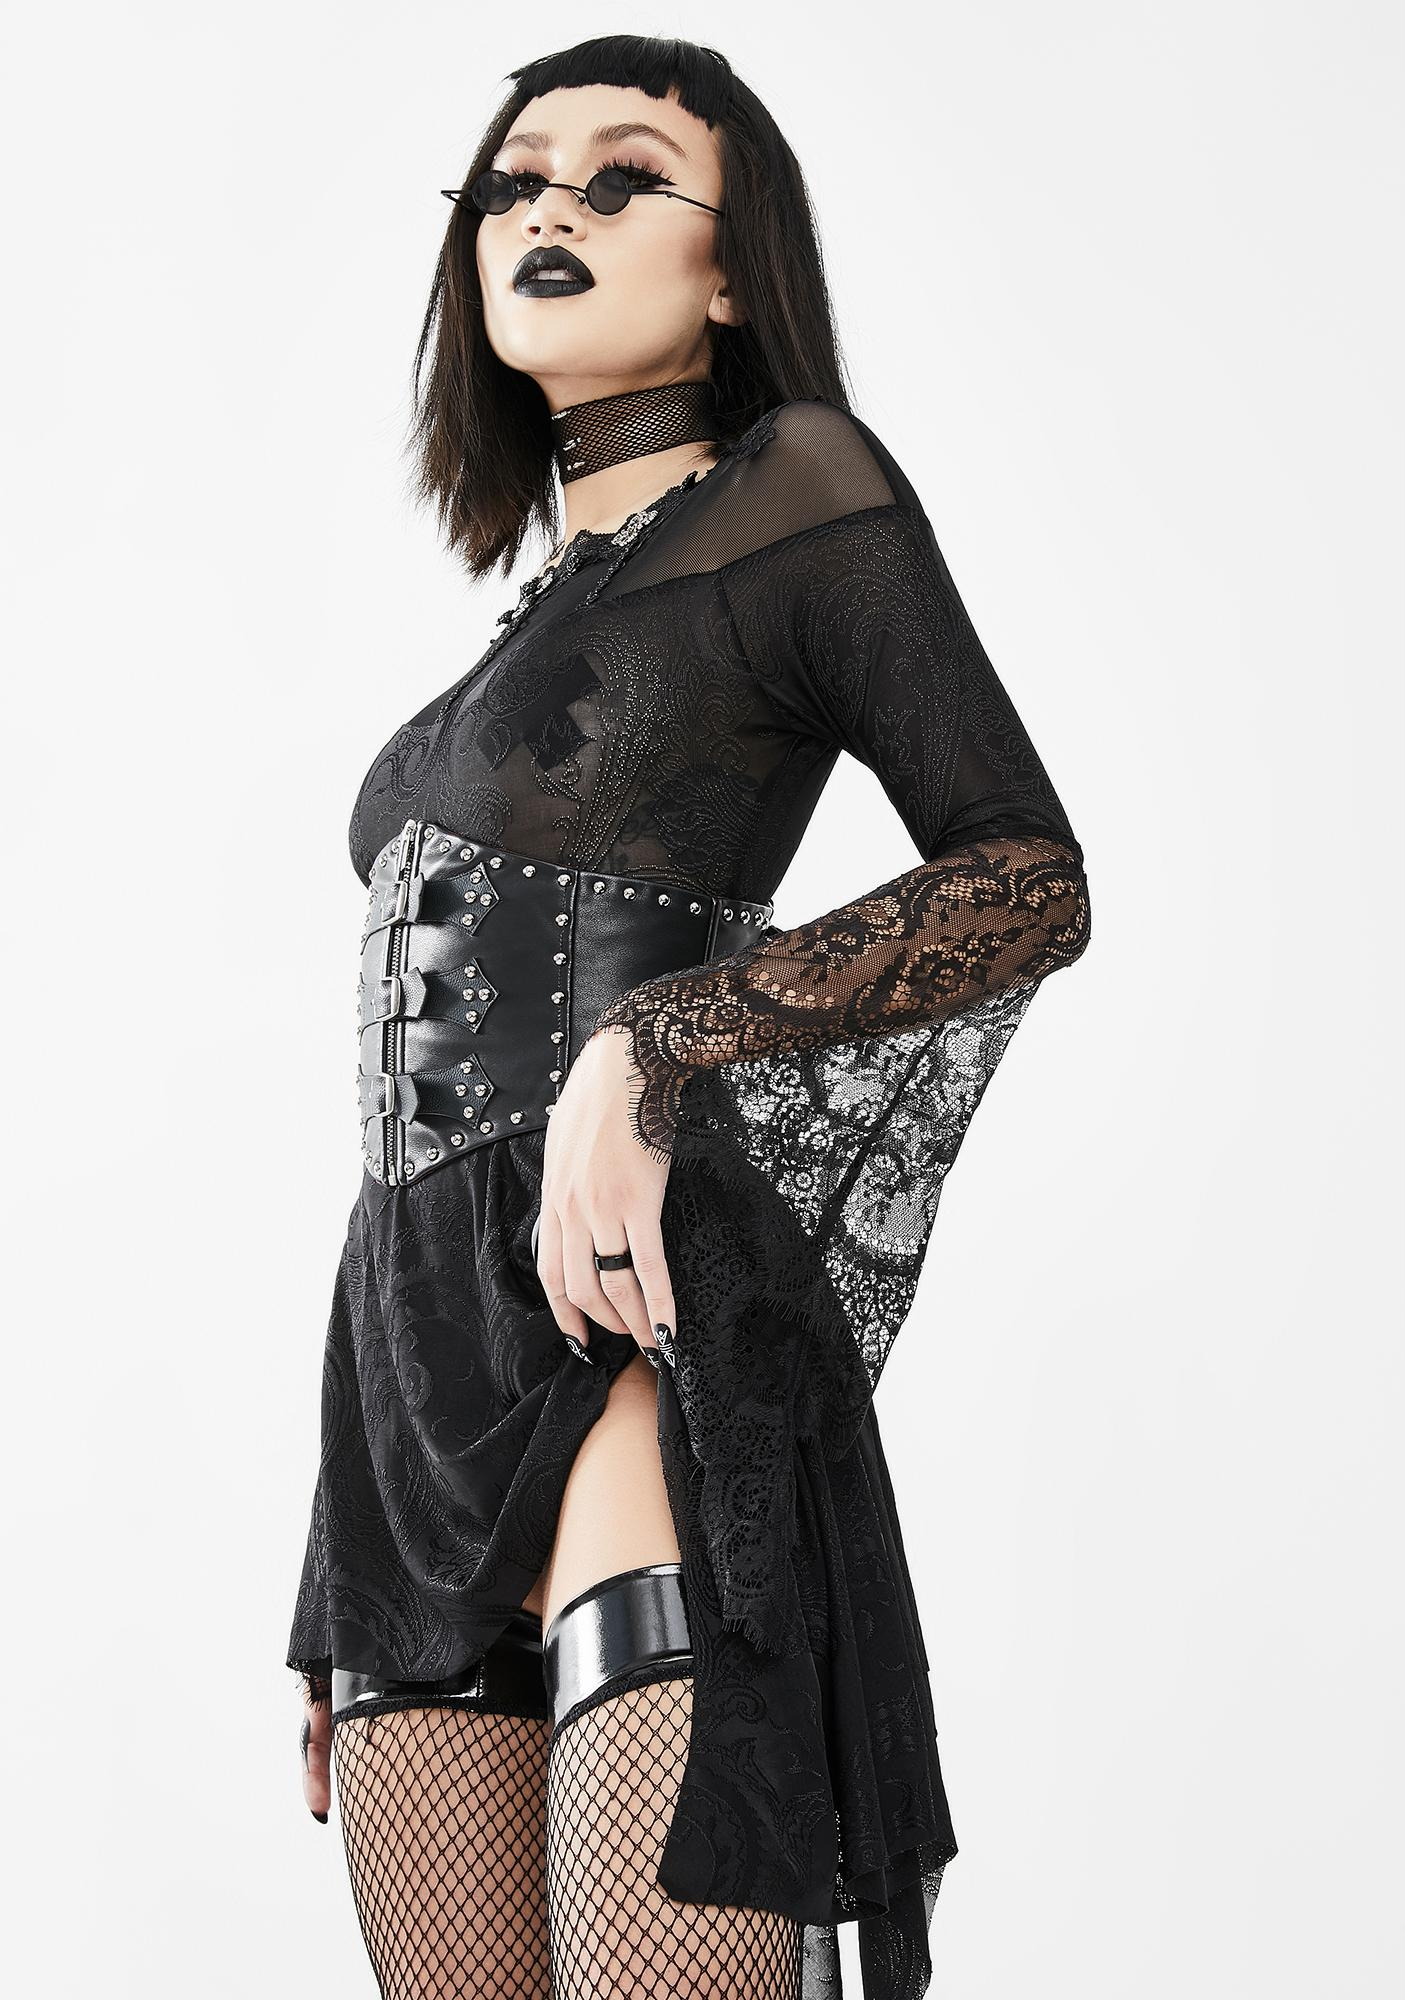 Eva Lady Sheer Black Dress With Lace Bell Sleeves